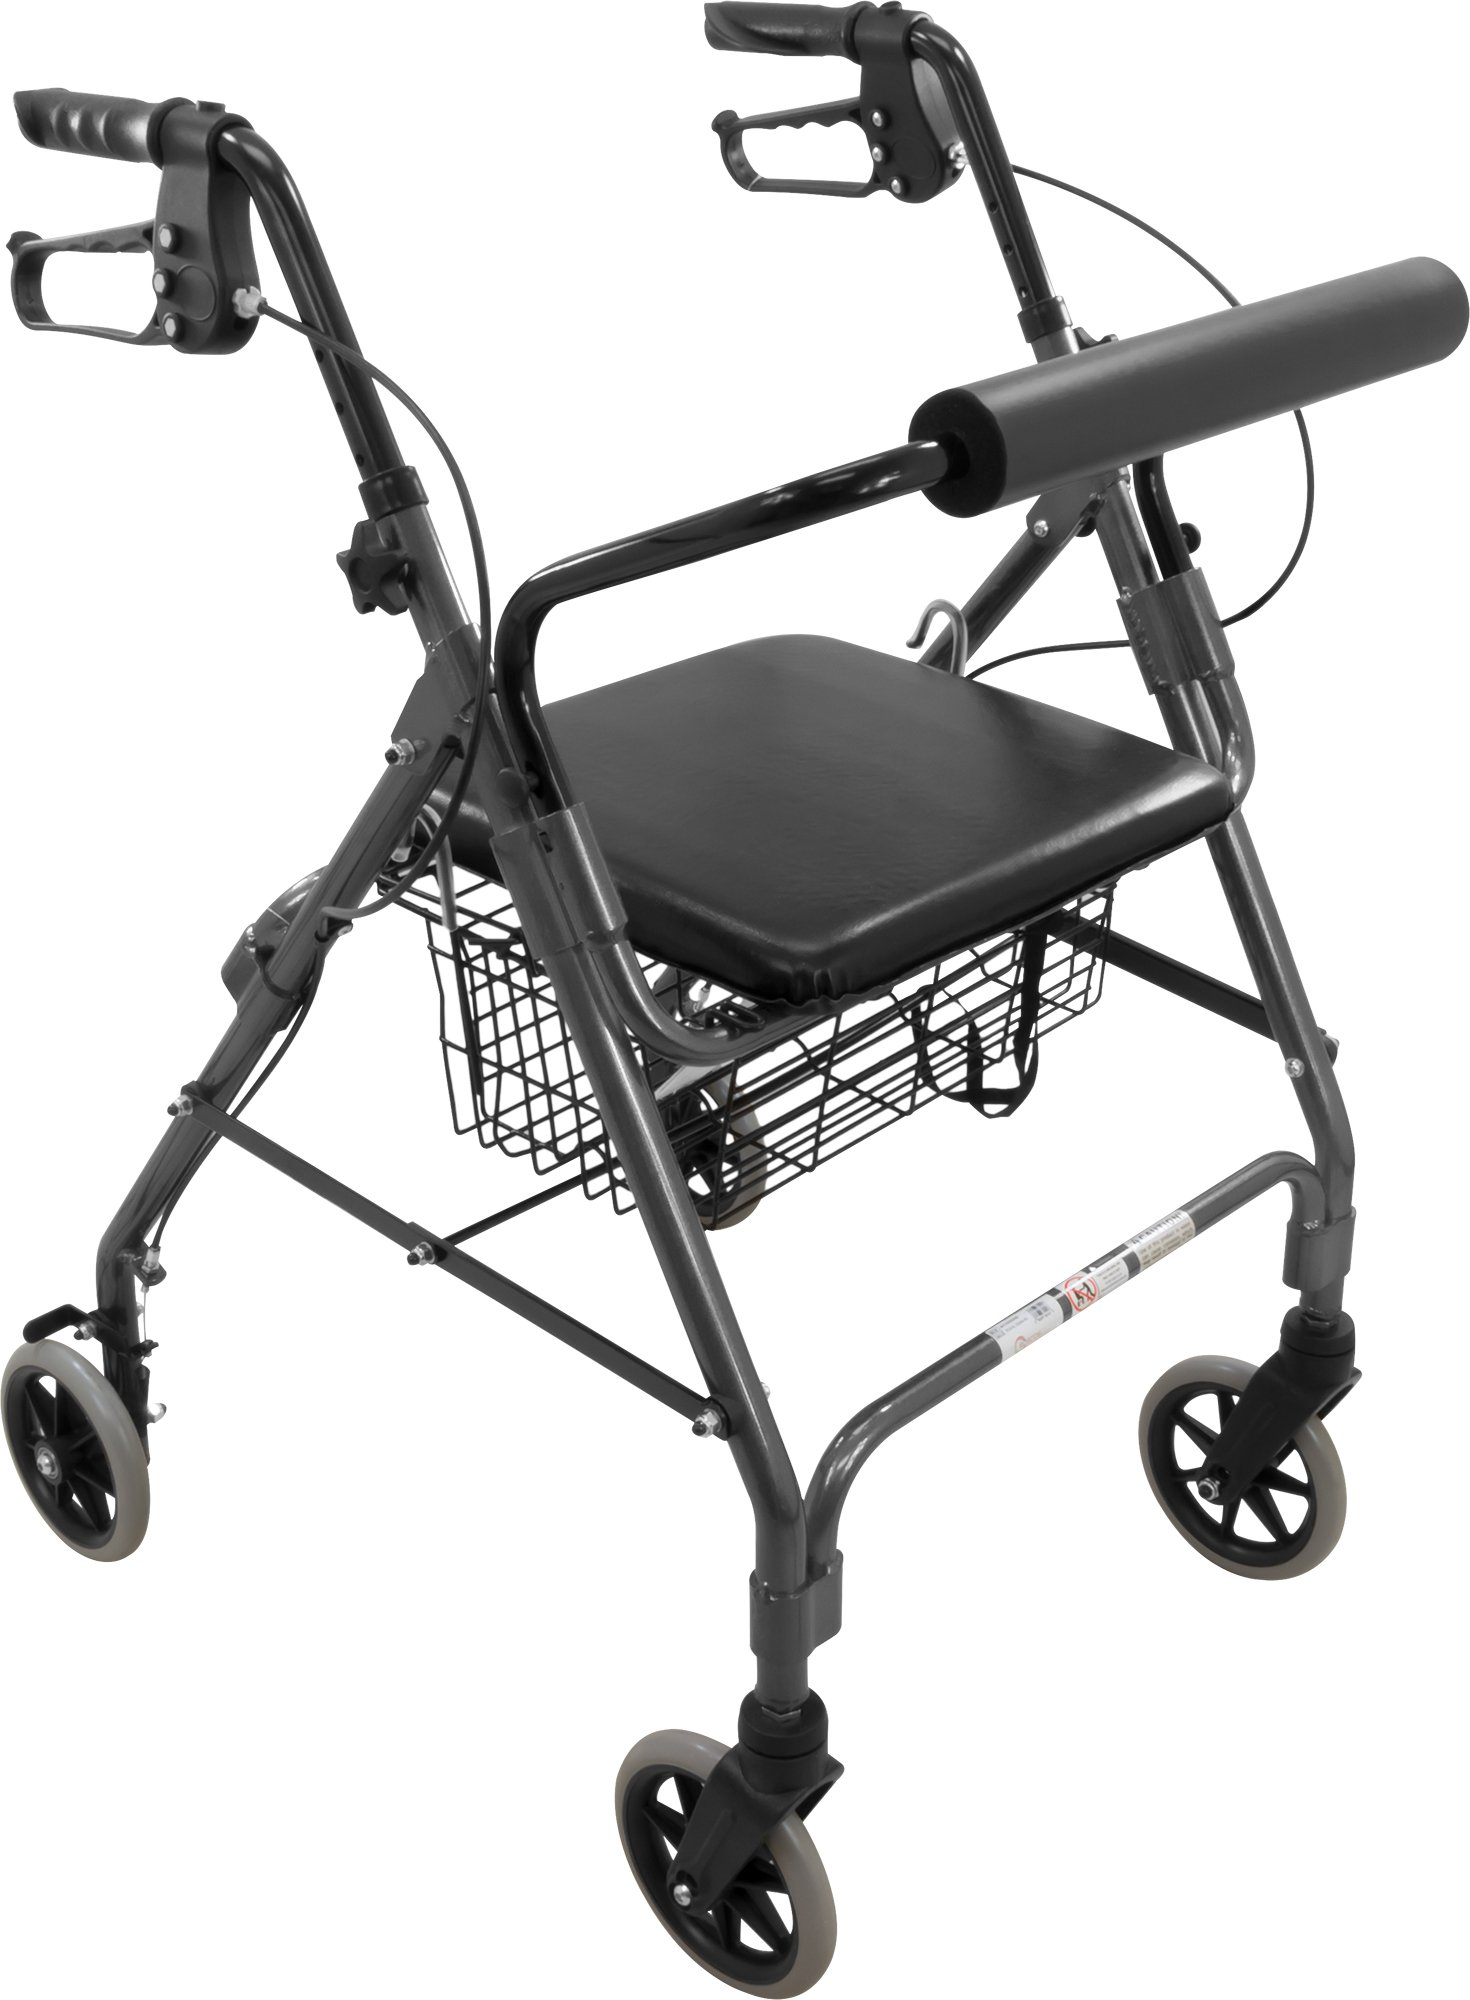 ProBasics Aluminum Rollator with 6-inch Wheels, Padded Seat and Backrest, Height Adjustable Handles, Folds for Storage & Transport, 300 Pound Weight Capacity, Black